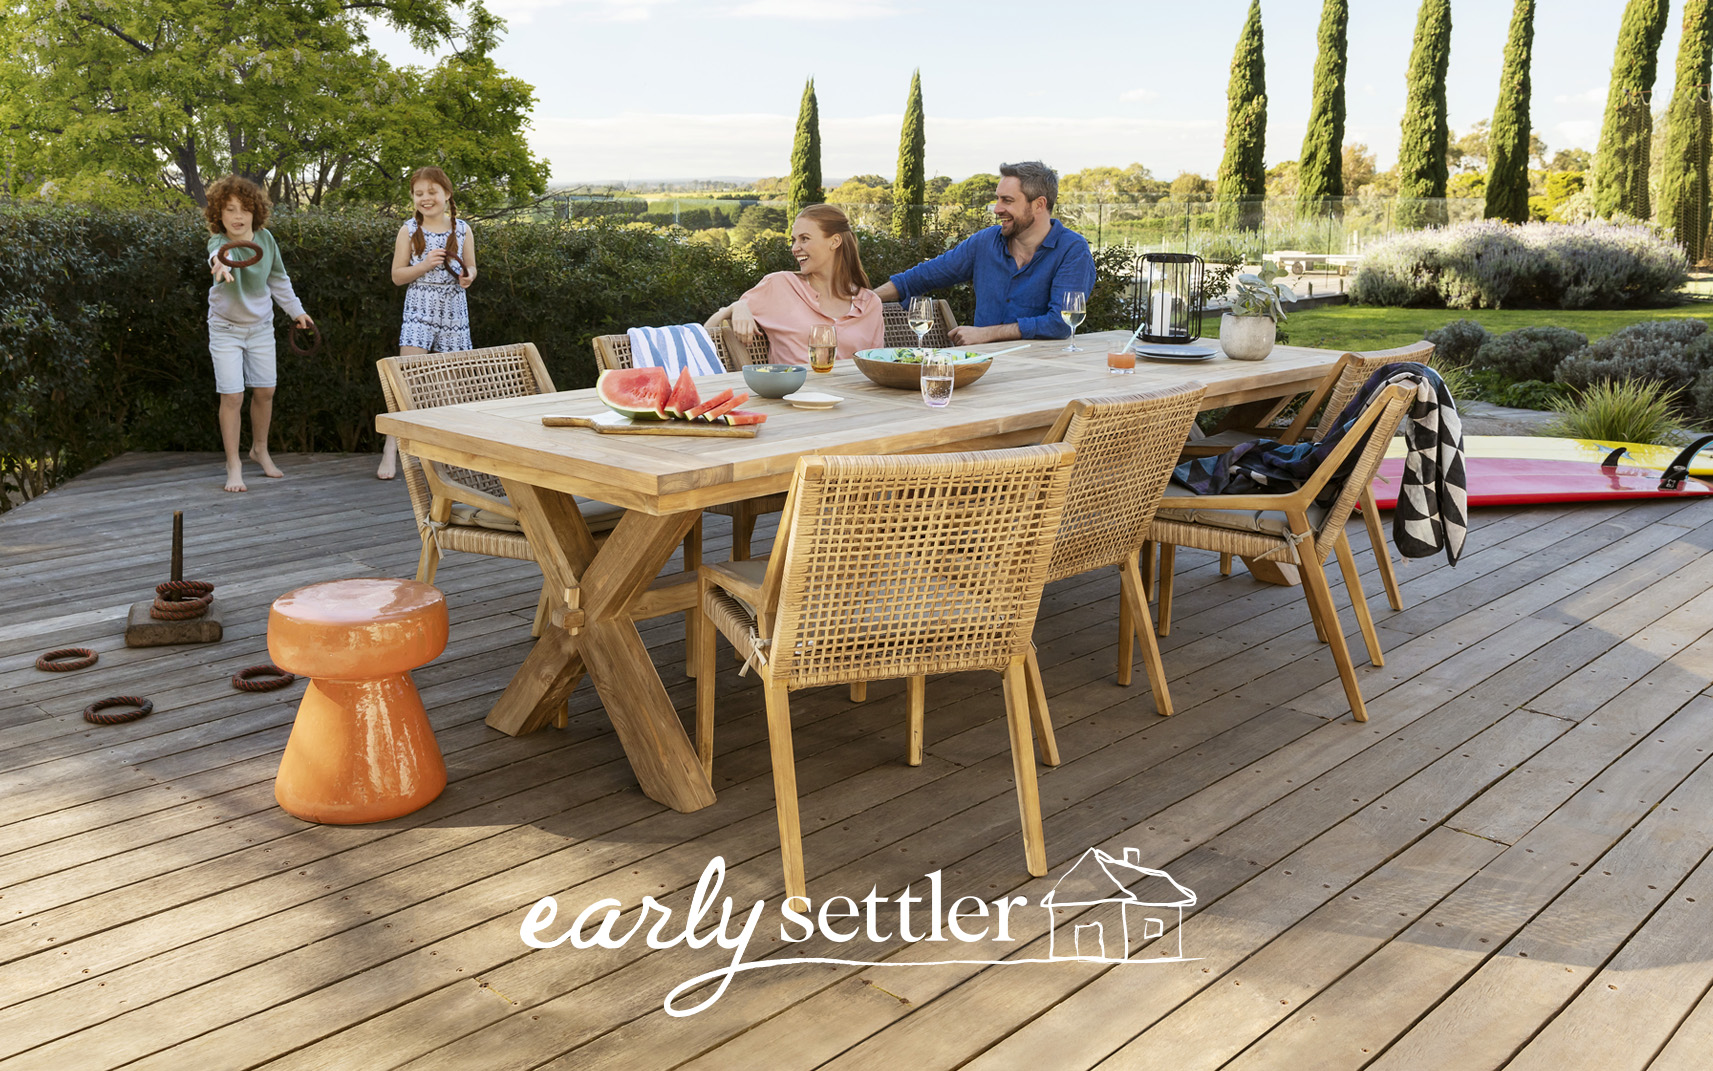 Early Settler appoints Bellwether Agency and launches new Summer Outdoor campaign